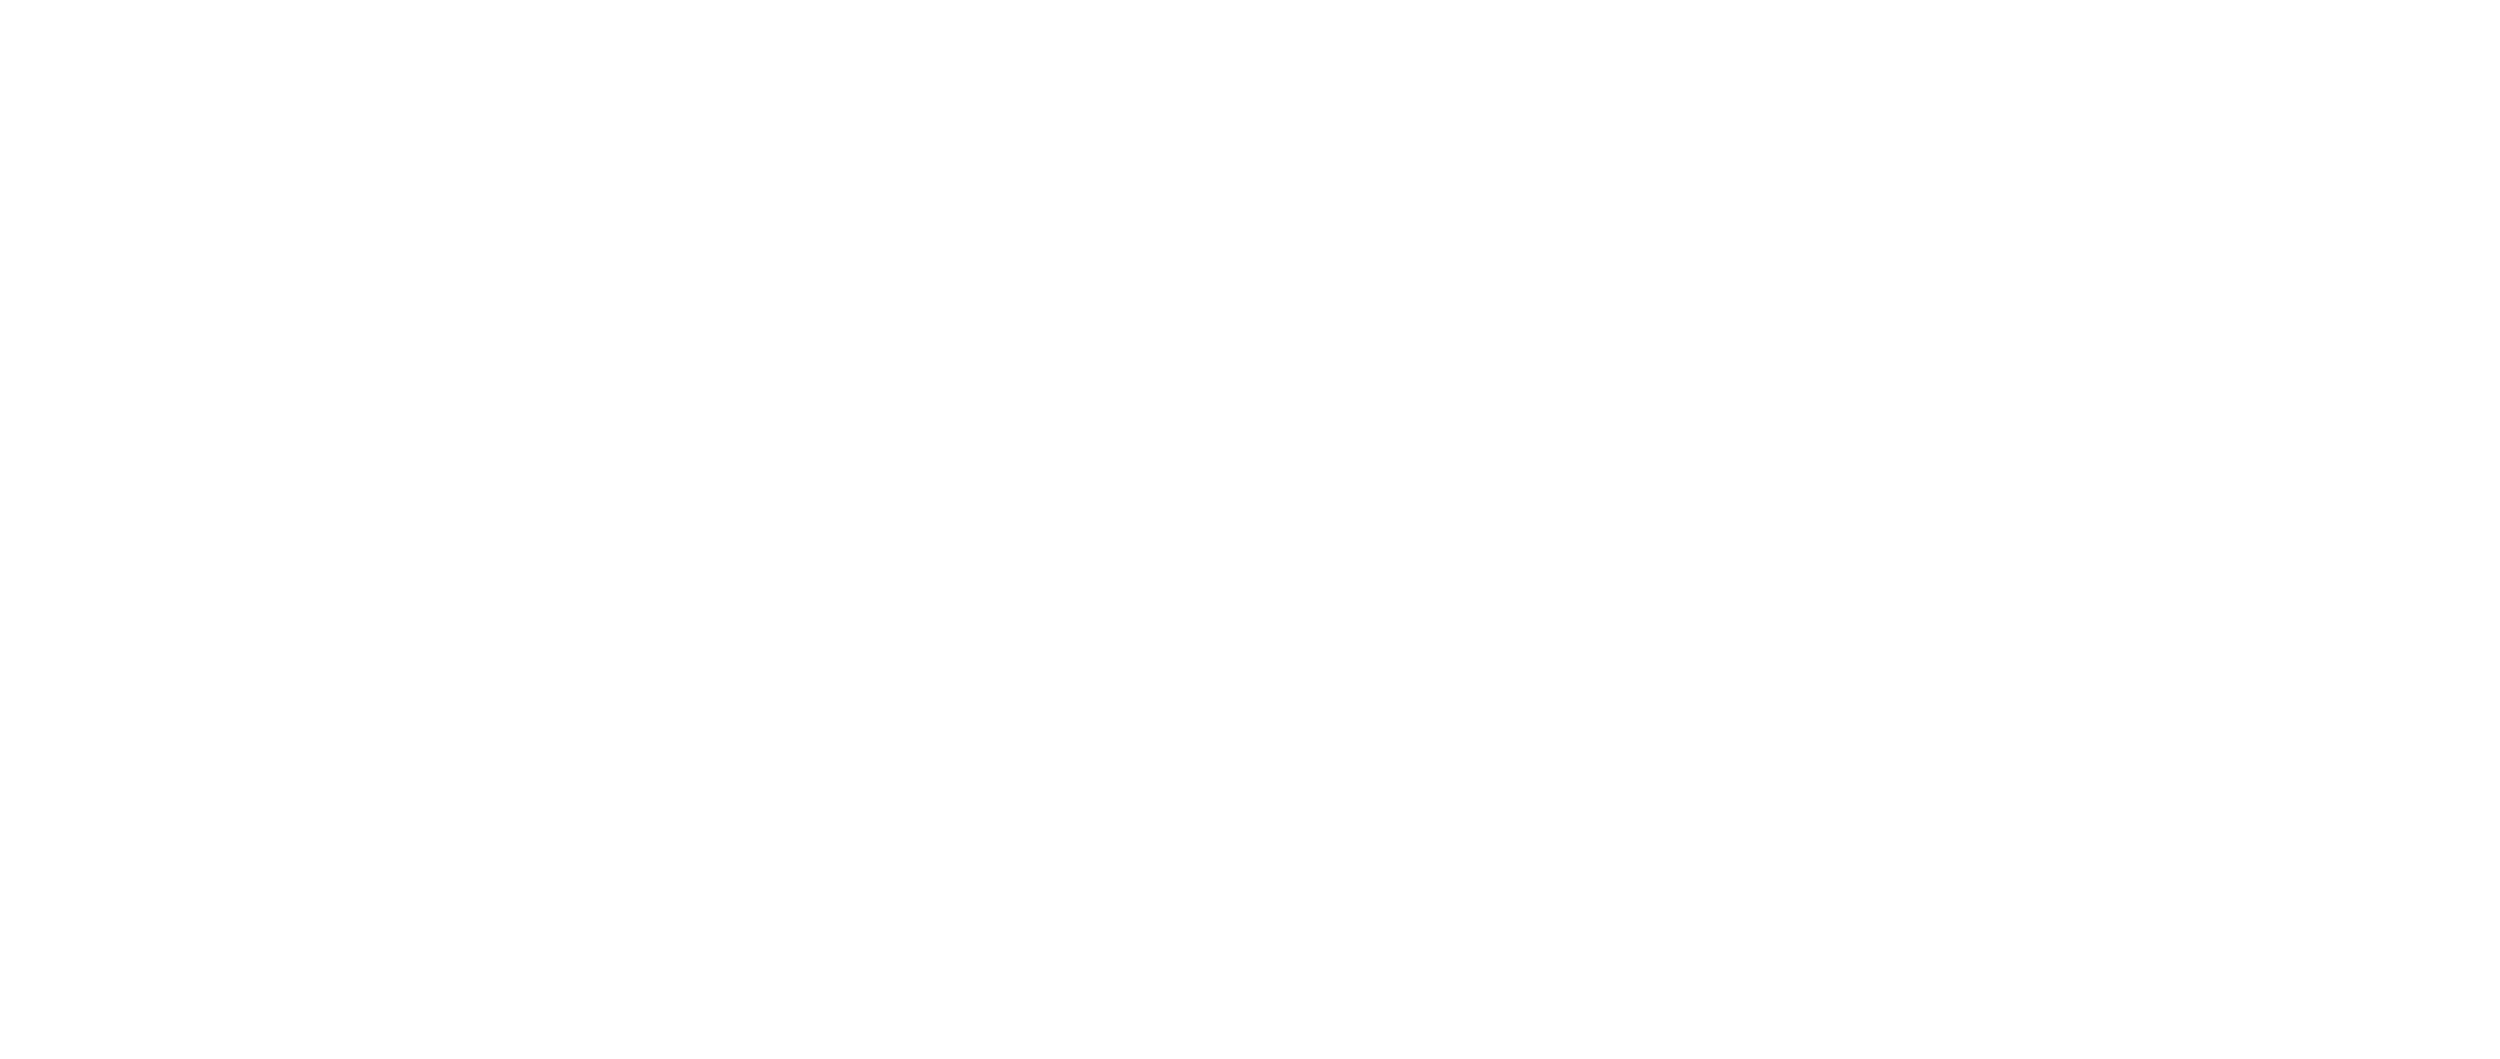 Black Diamon Logo White (1).png